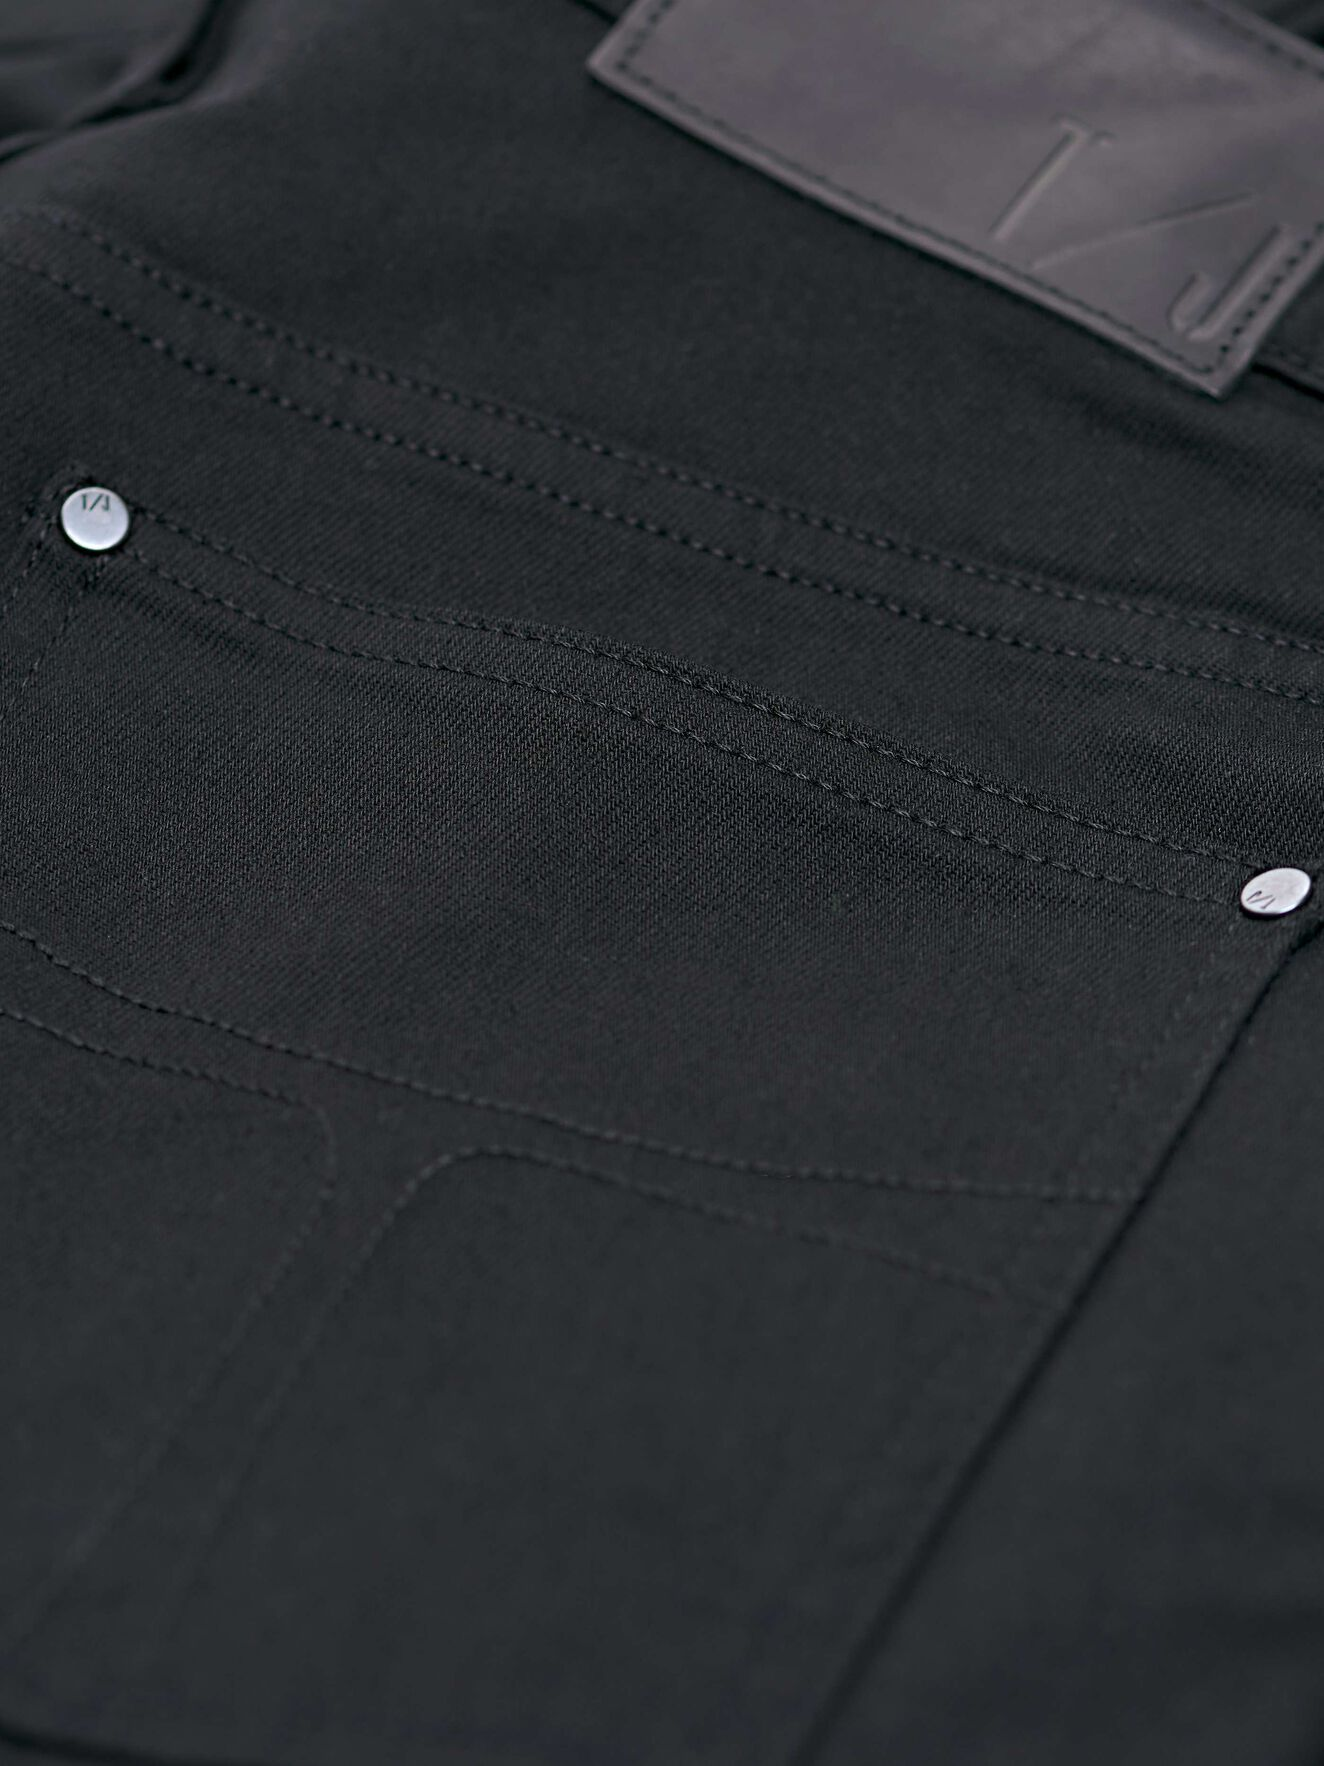 0a40a5f46d ... Iggy Jeans in Black from Tiger of Sweden